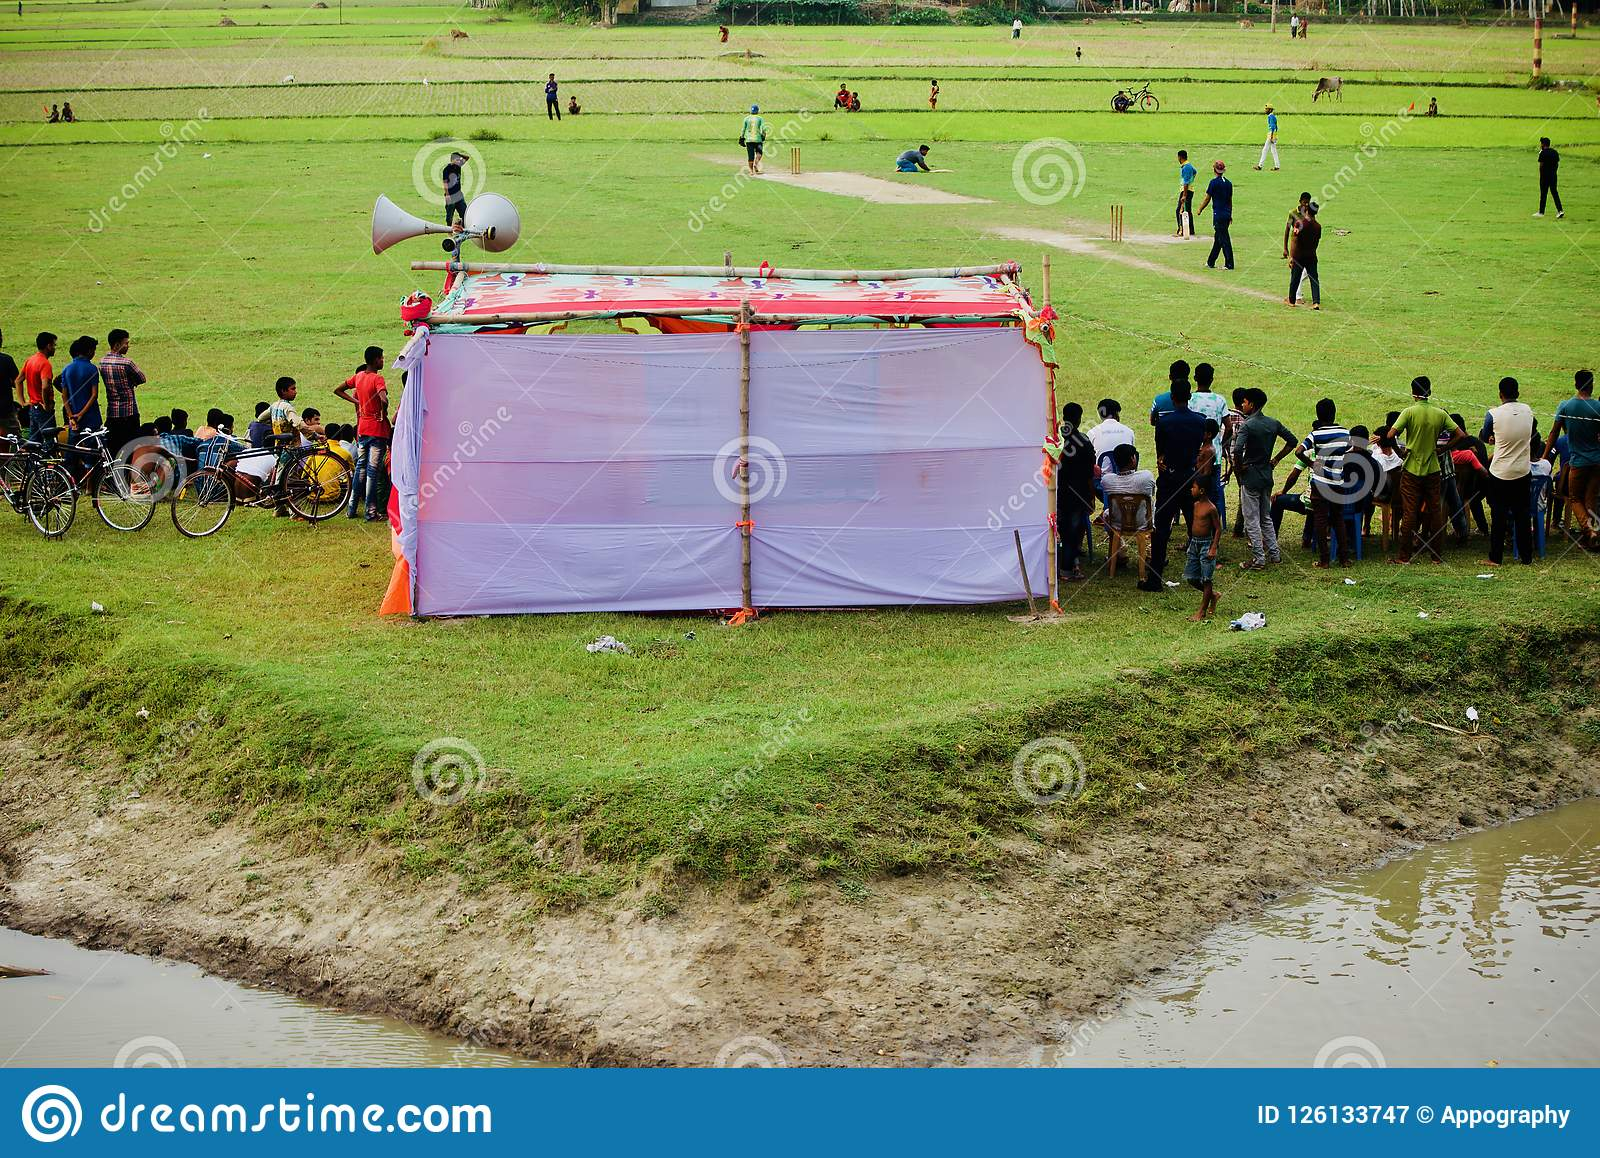 People watching cricket games around a village ground